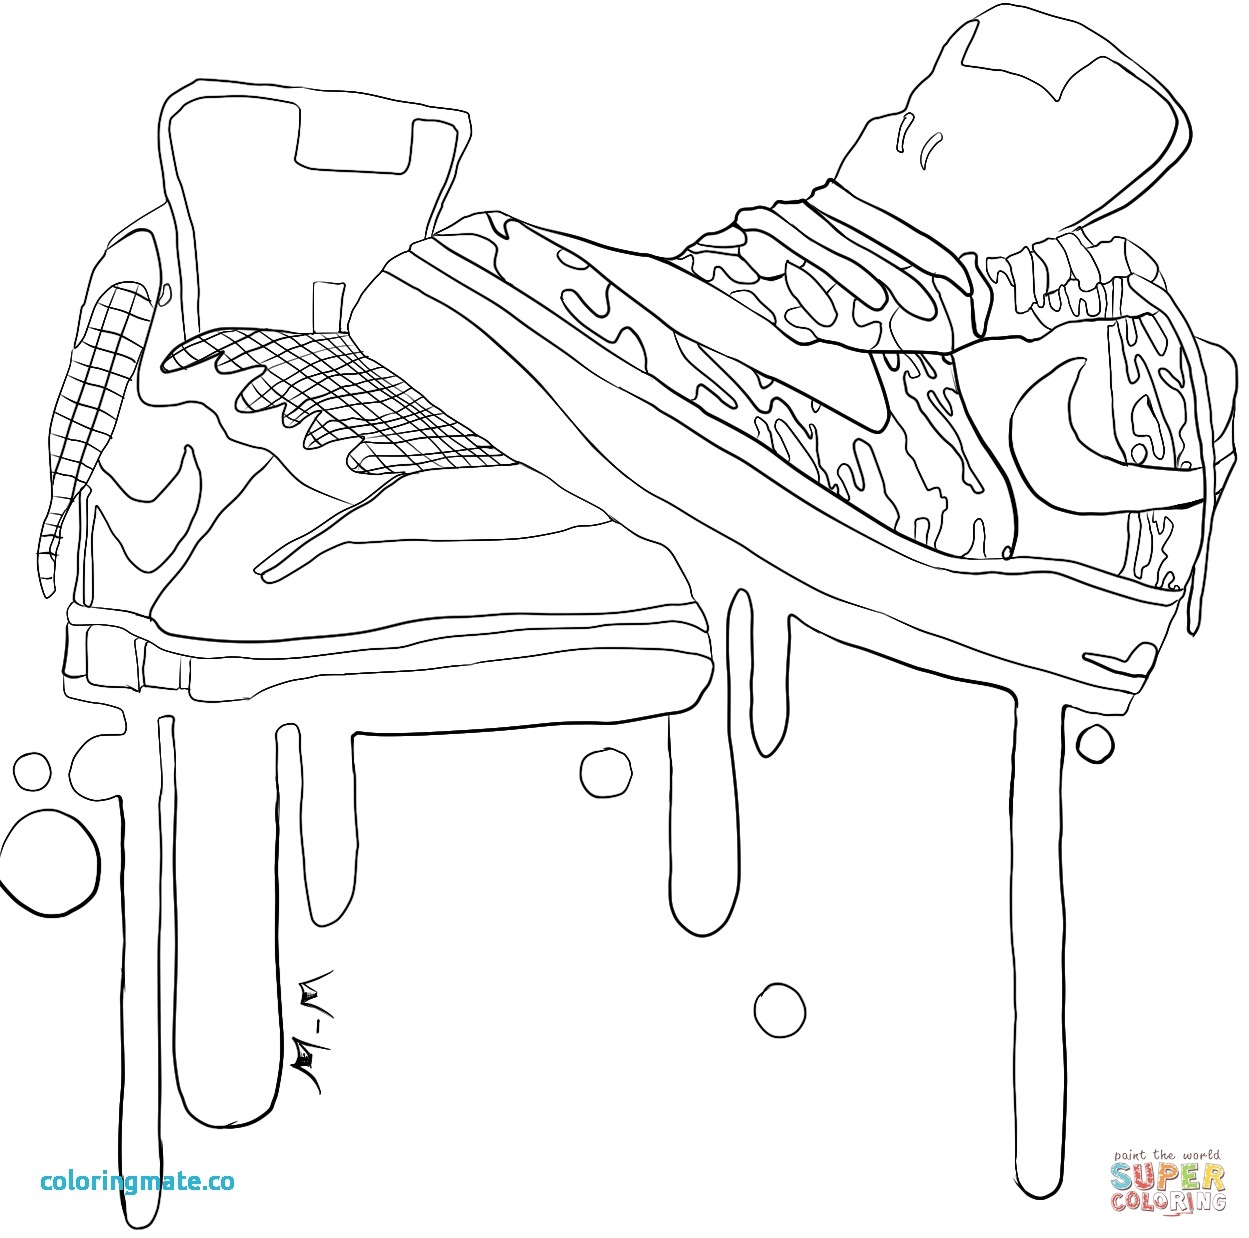 coloring pages of shoes coloring page sports shoes color free coloring pages shoes coloring pages of